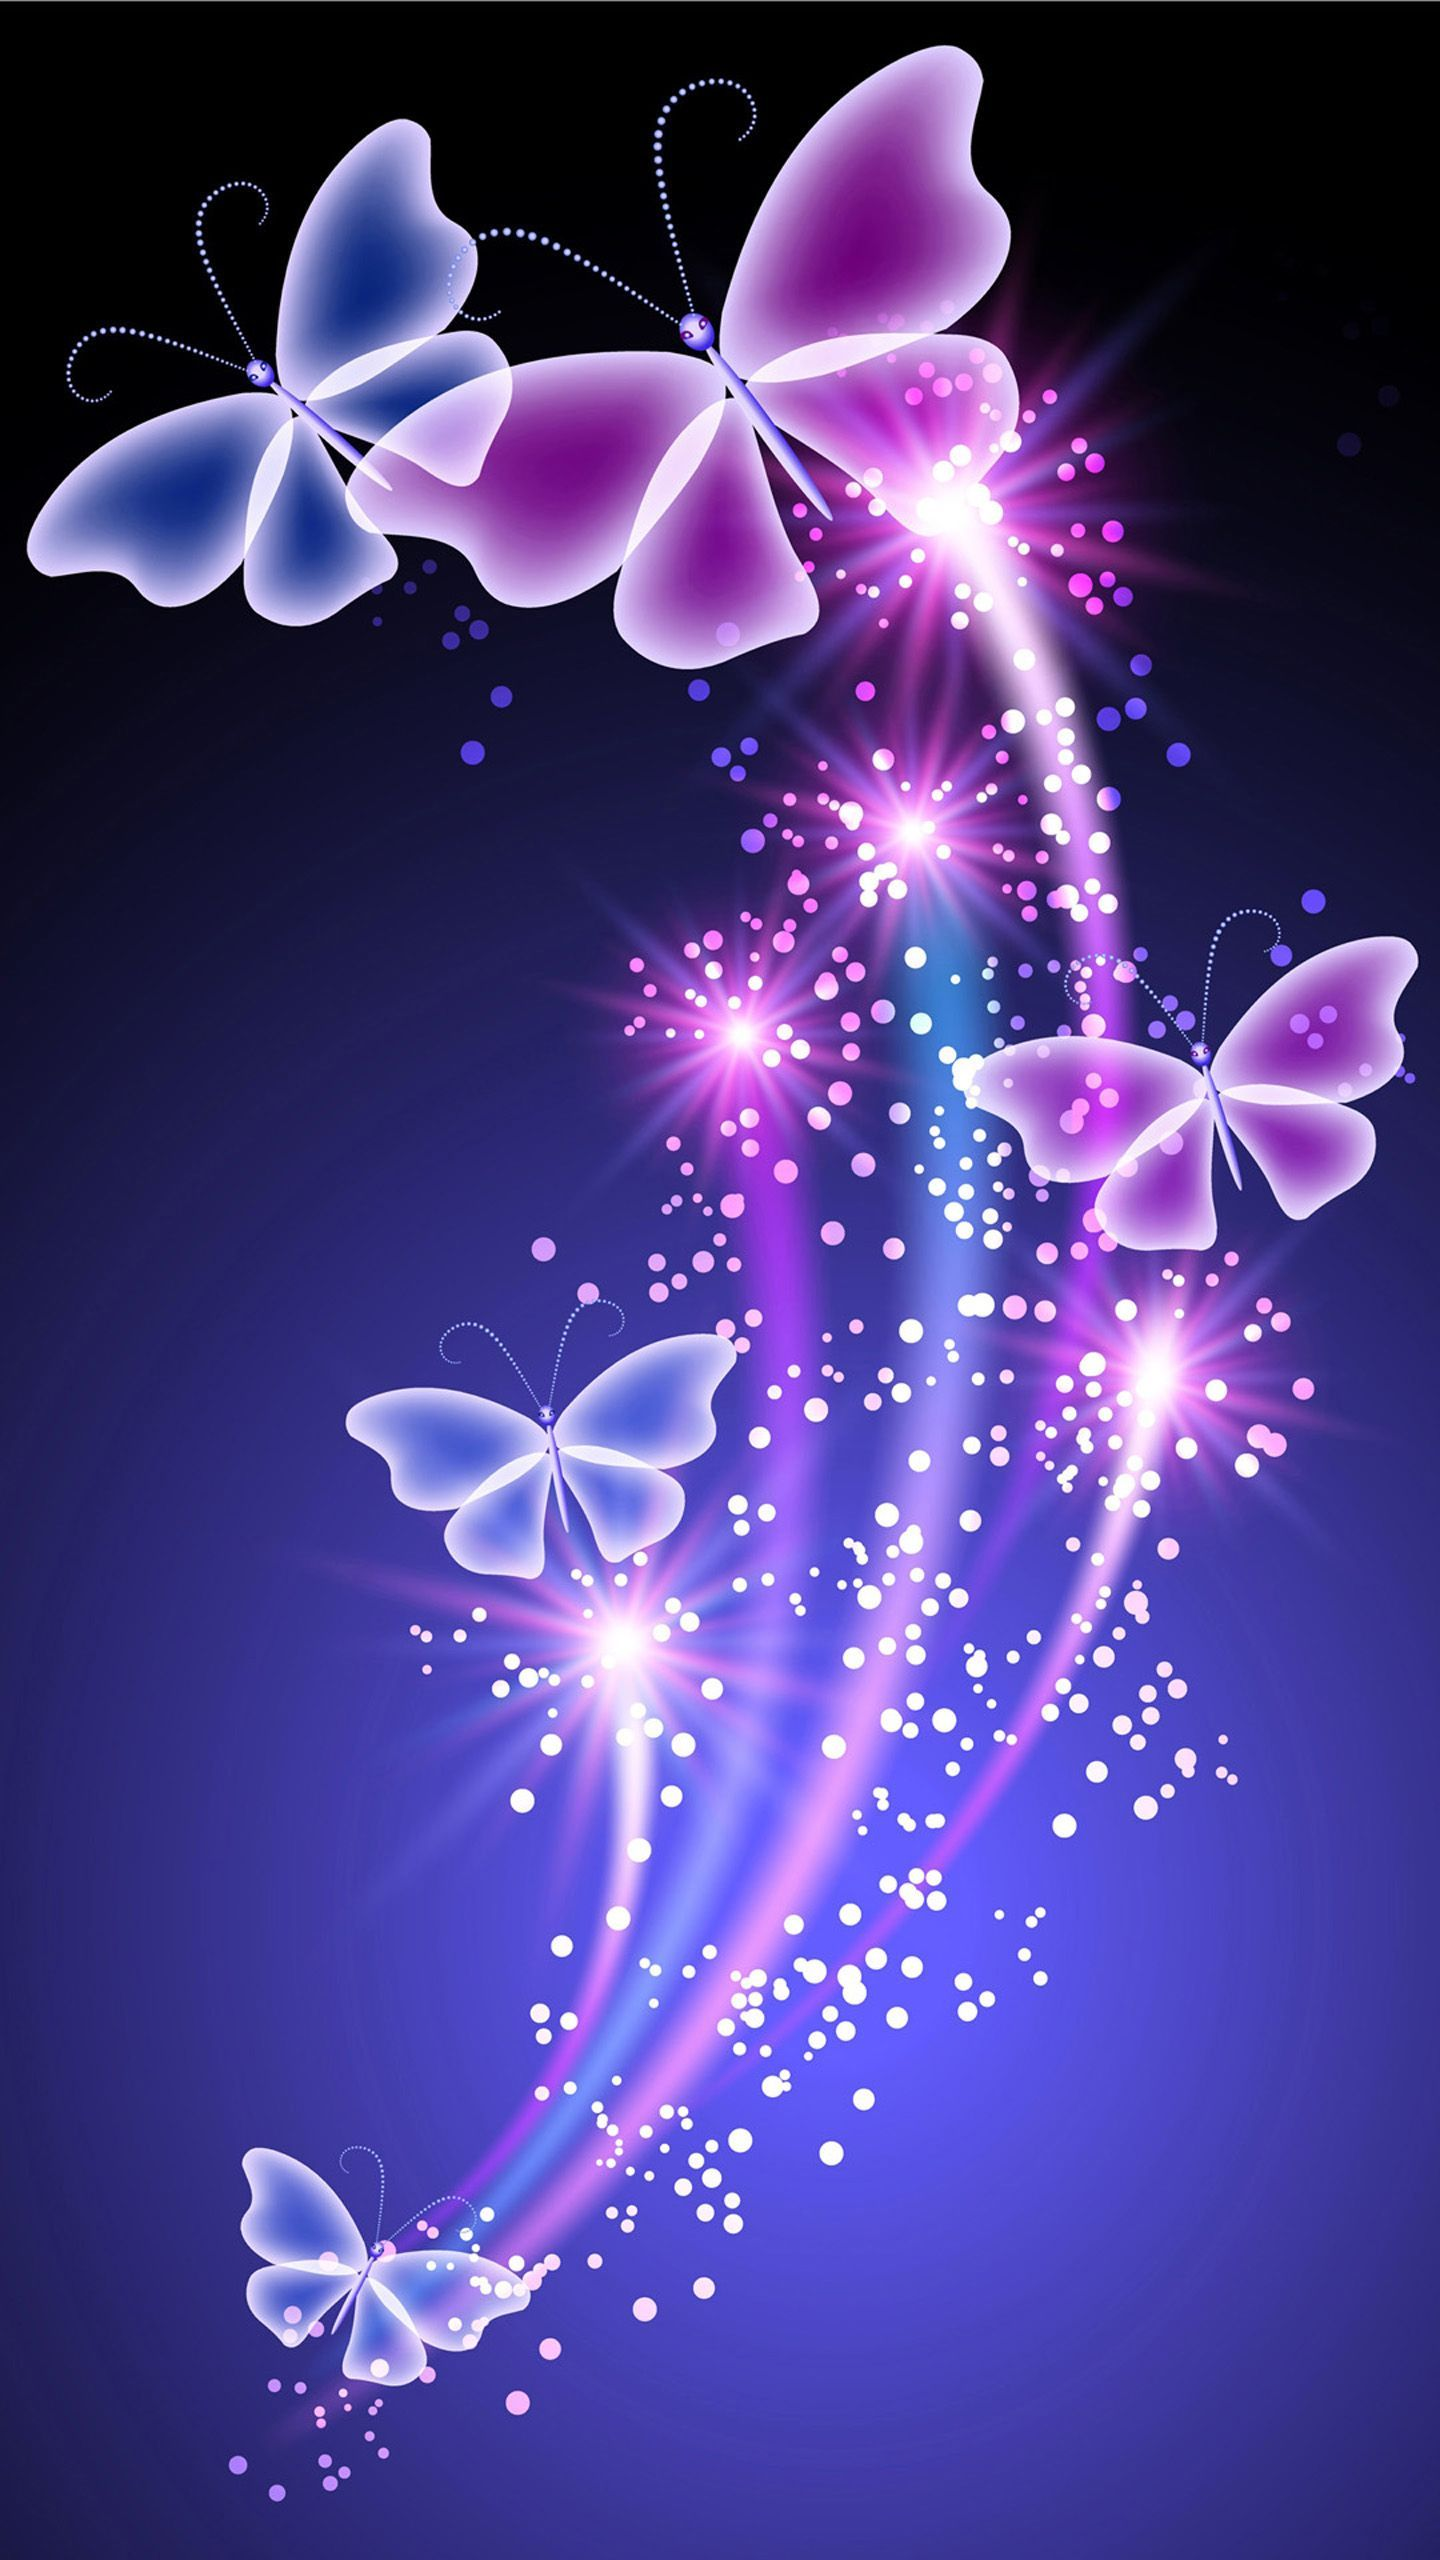 Butterfly Wallpapers Butterfly Wallpaper Backgrounds Butterfly Background Butterfly Wallpaper